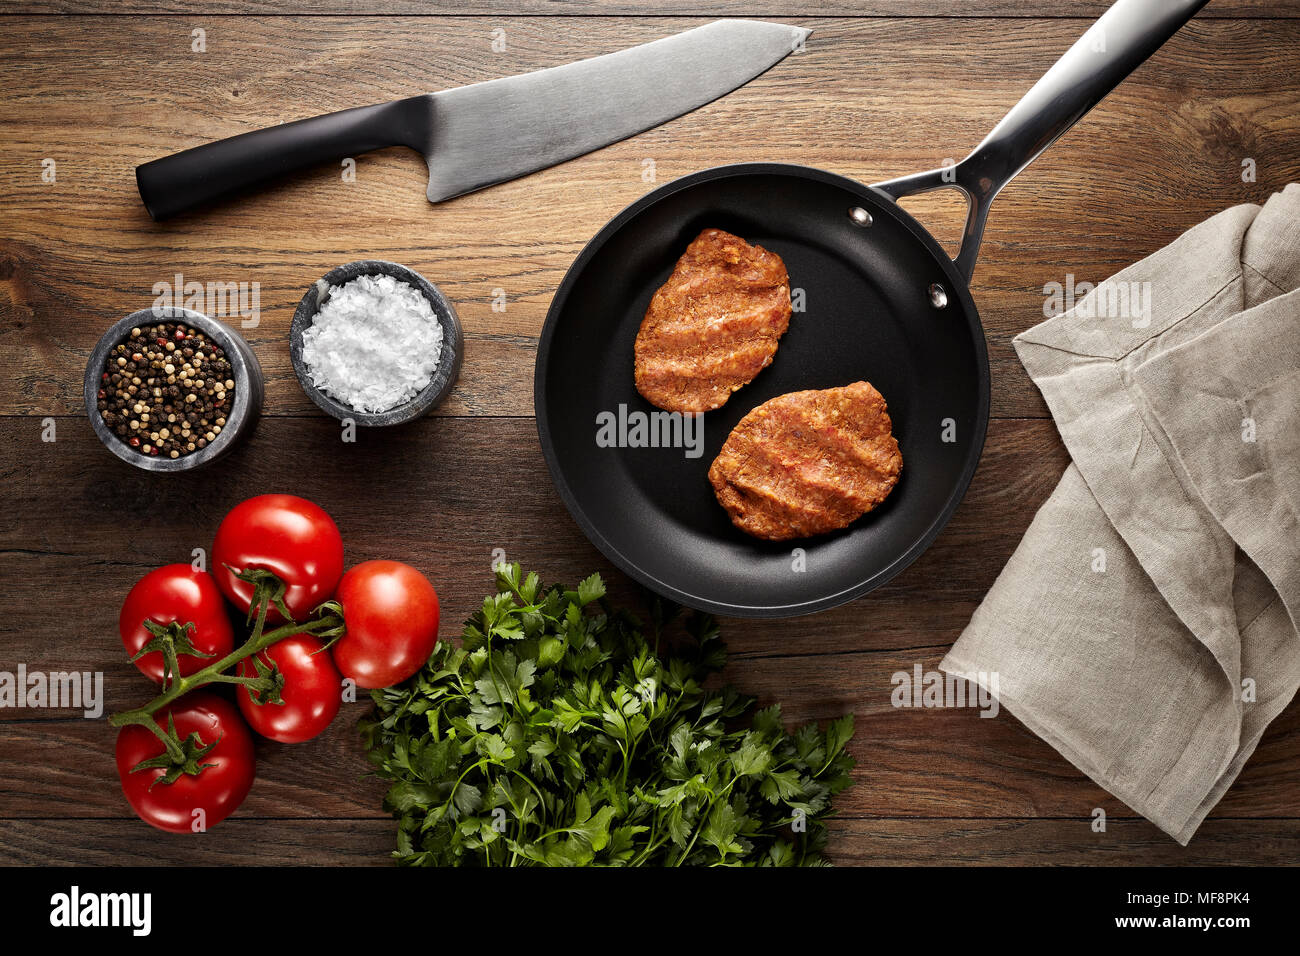 Raw meatballs in a black frying pan on a wooden table. Tomatoes, meat knife, napkin, parsley, black pepper and meat salt props are on the table. - Stock Image